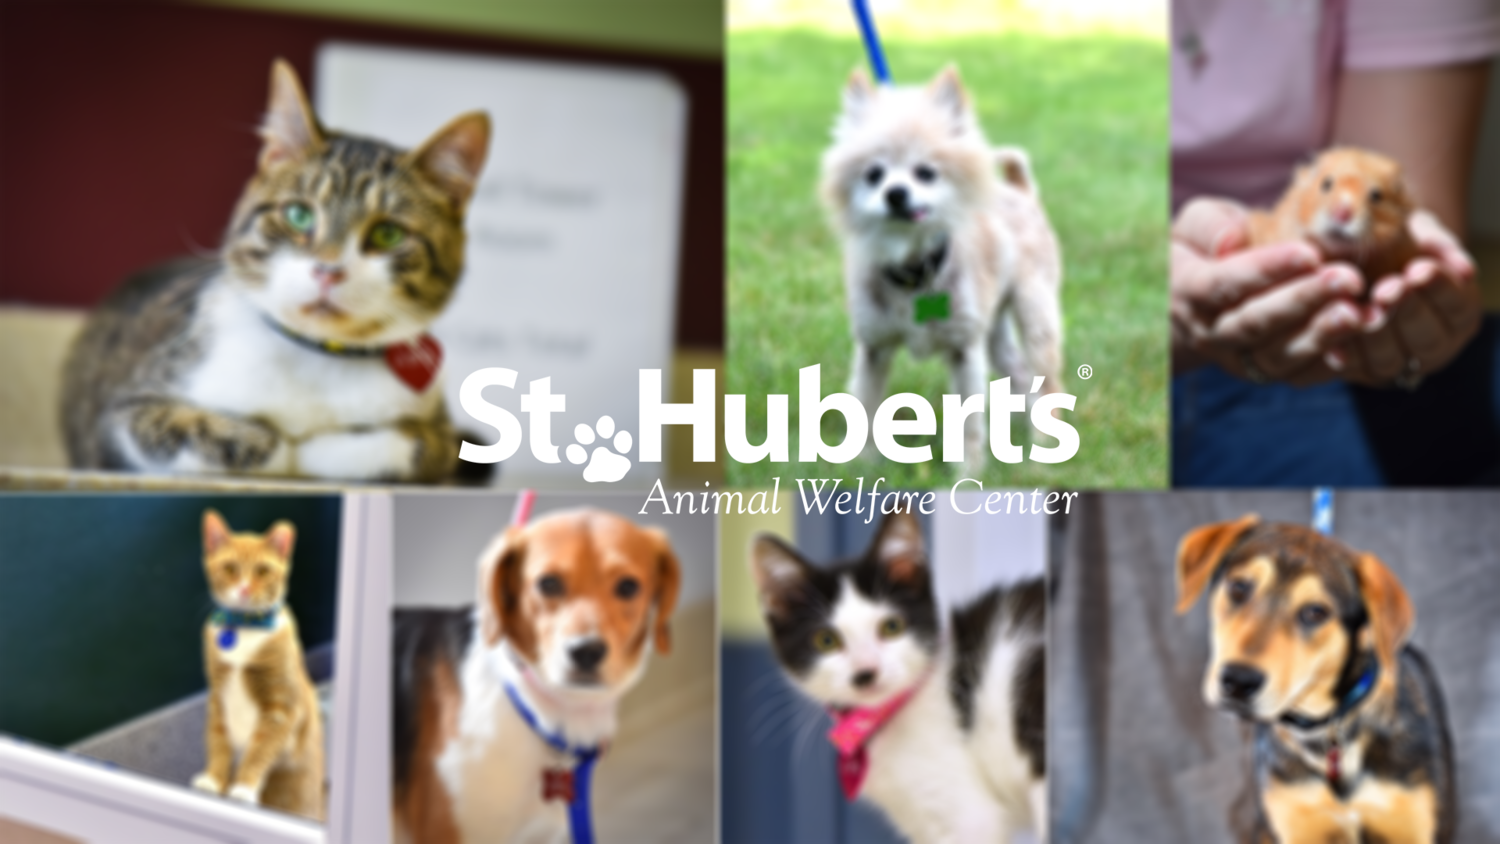 St Huberts Animal Welfare Center